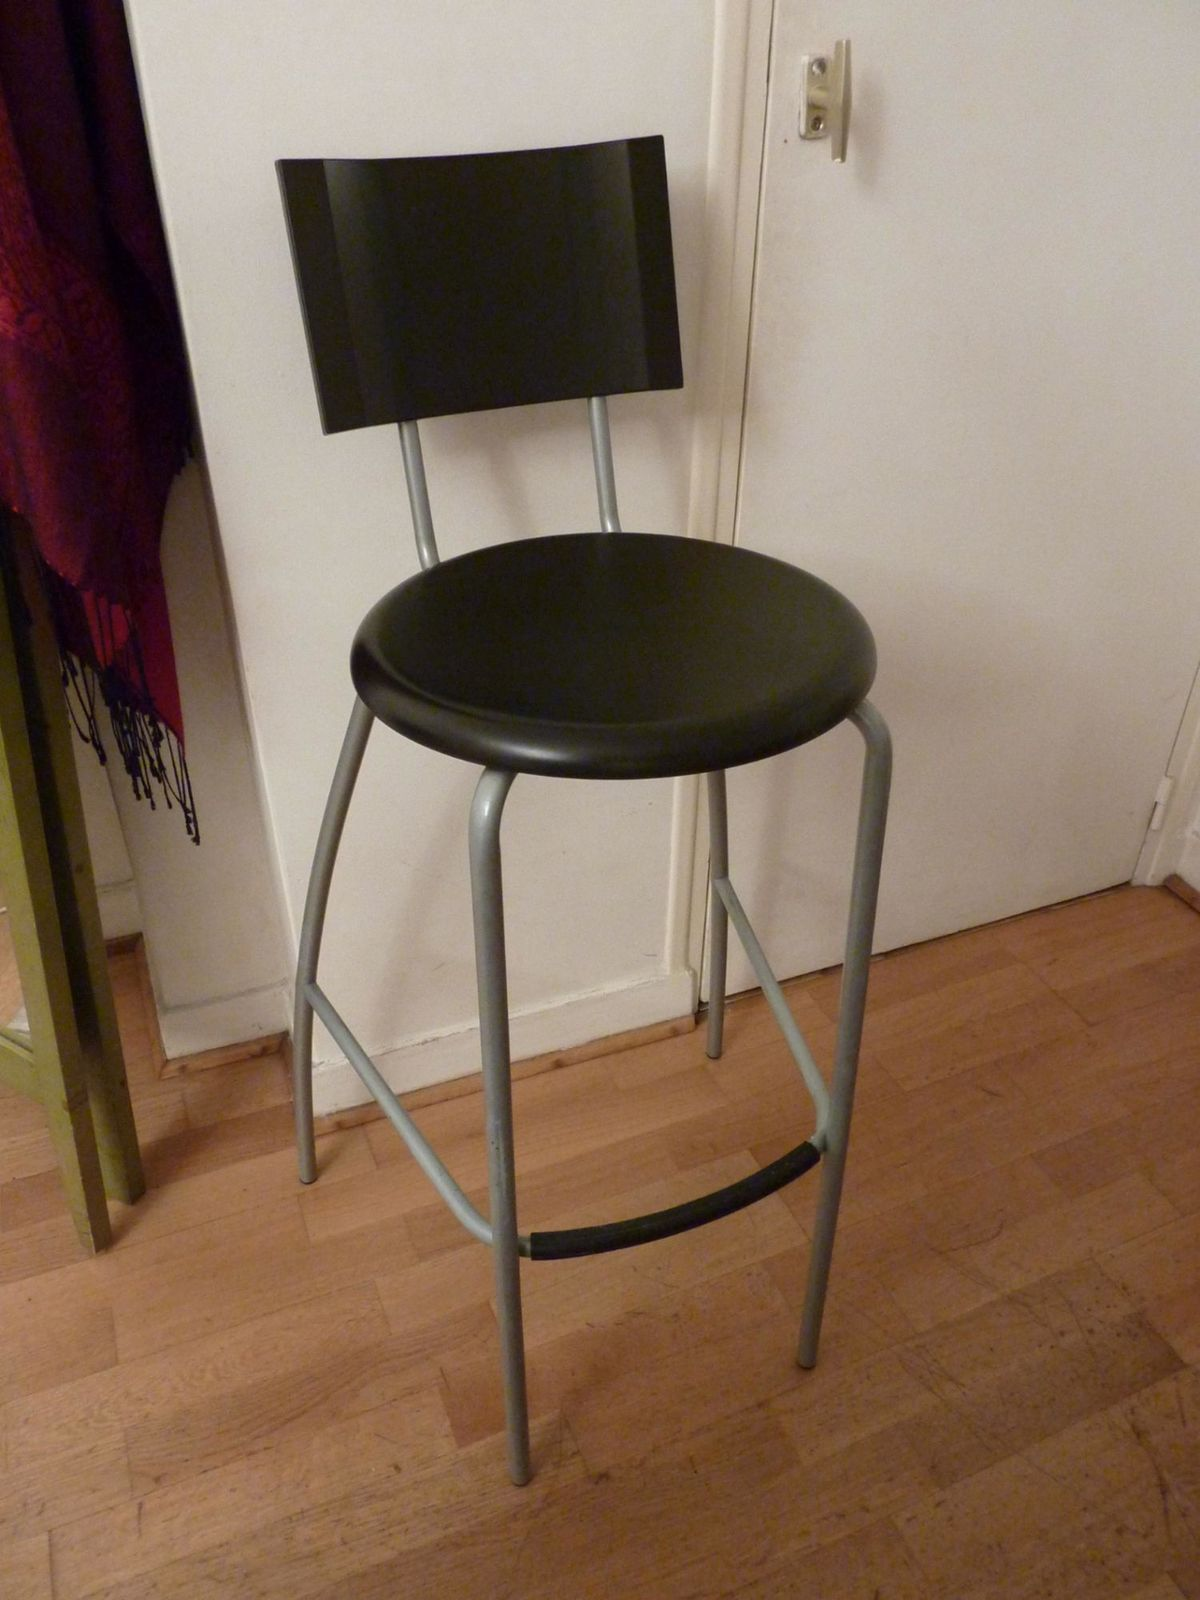 ikea tabourets de bar tabouret de bar ikea 2 henriksdal. Black Bedroom Furniture Sets. Home Design Ideas